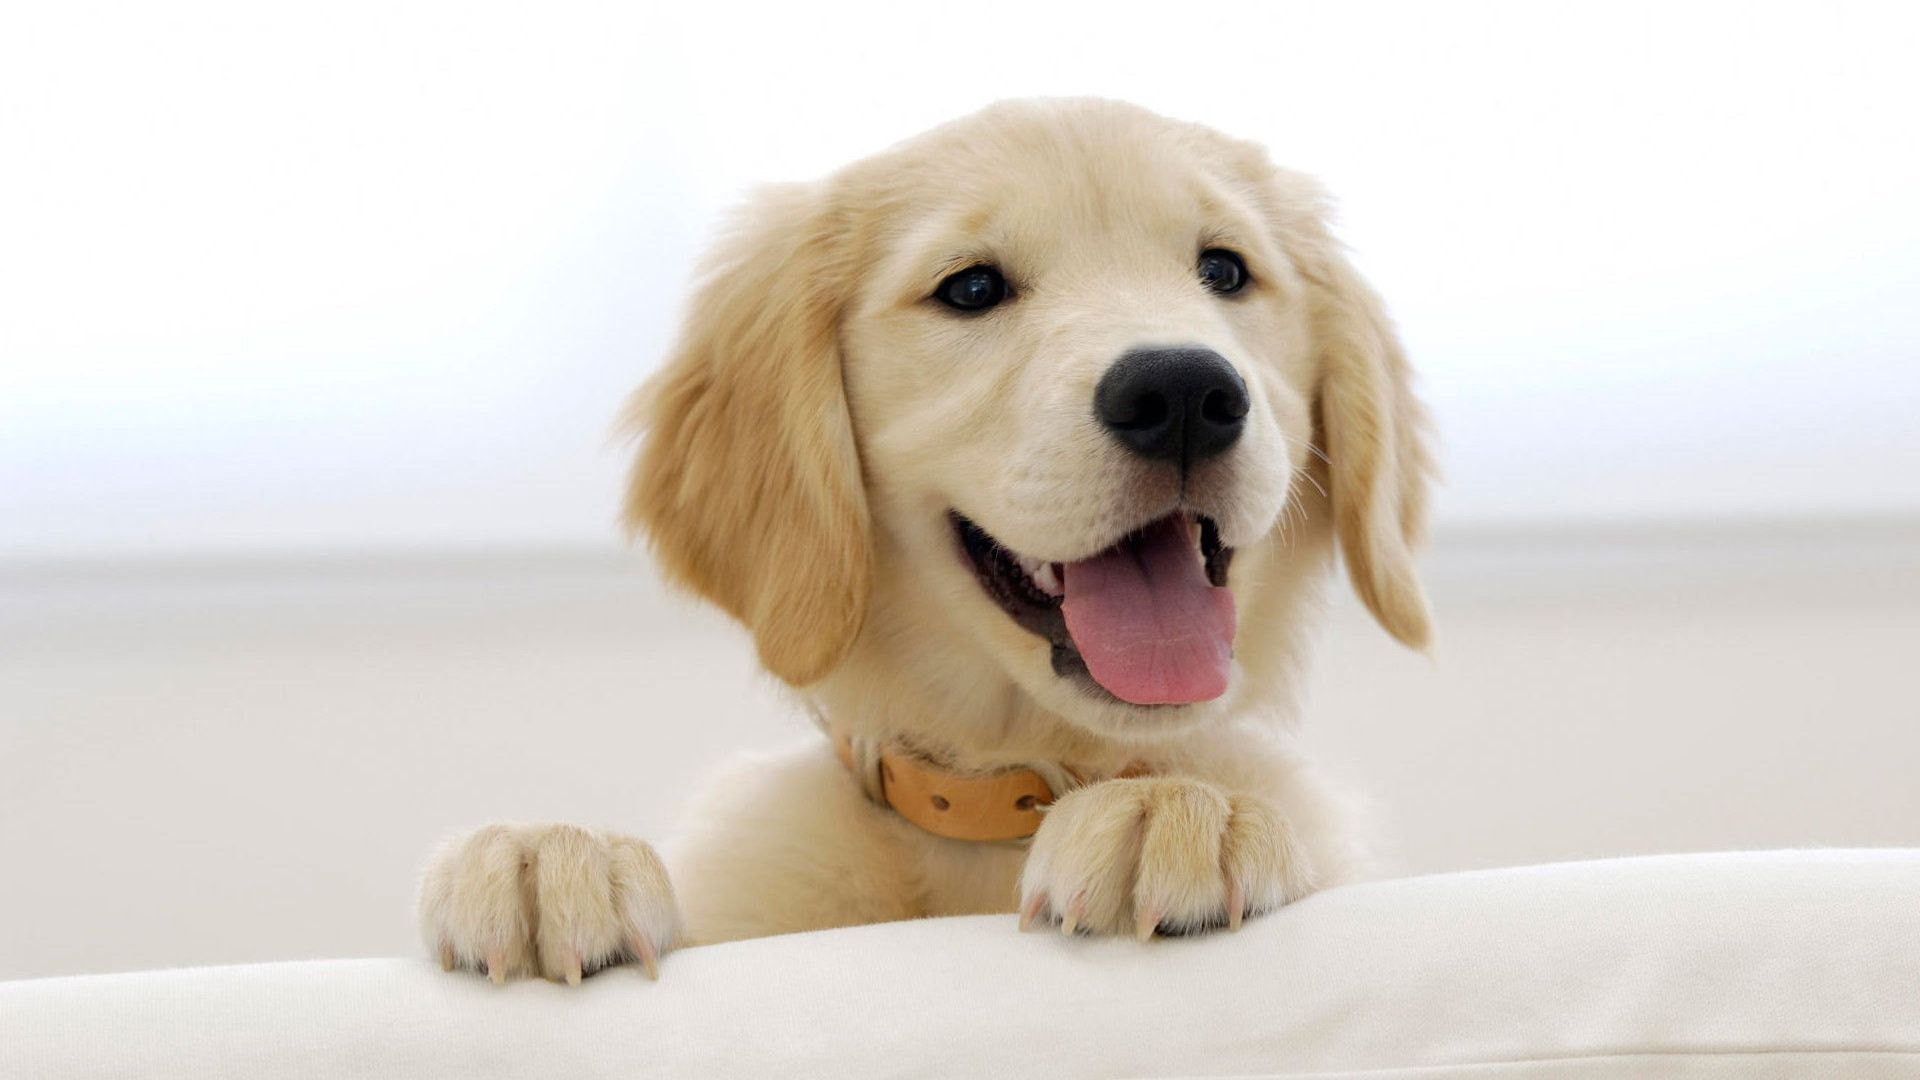 Auntconnie Cute Puppies Puppy Backgrounds Cute Dogs